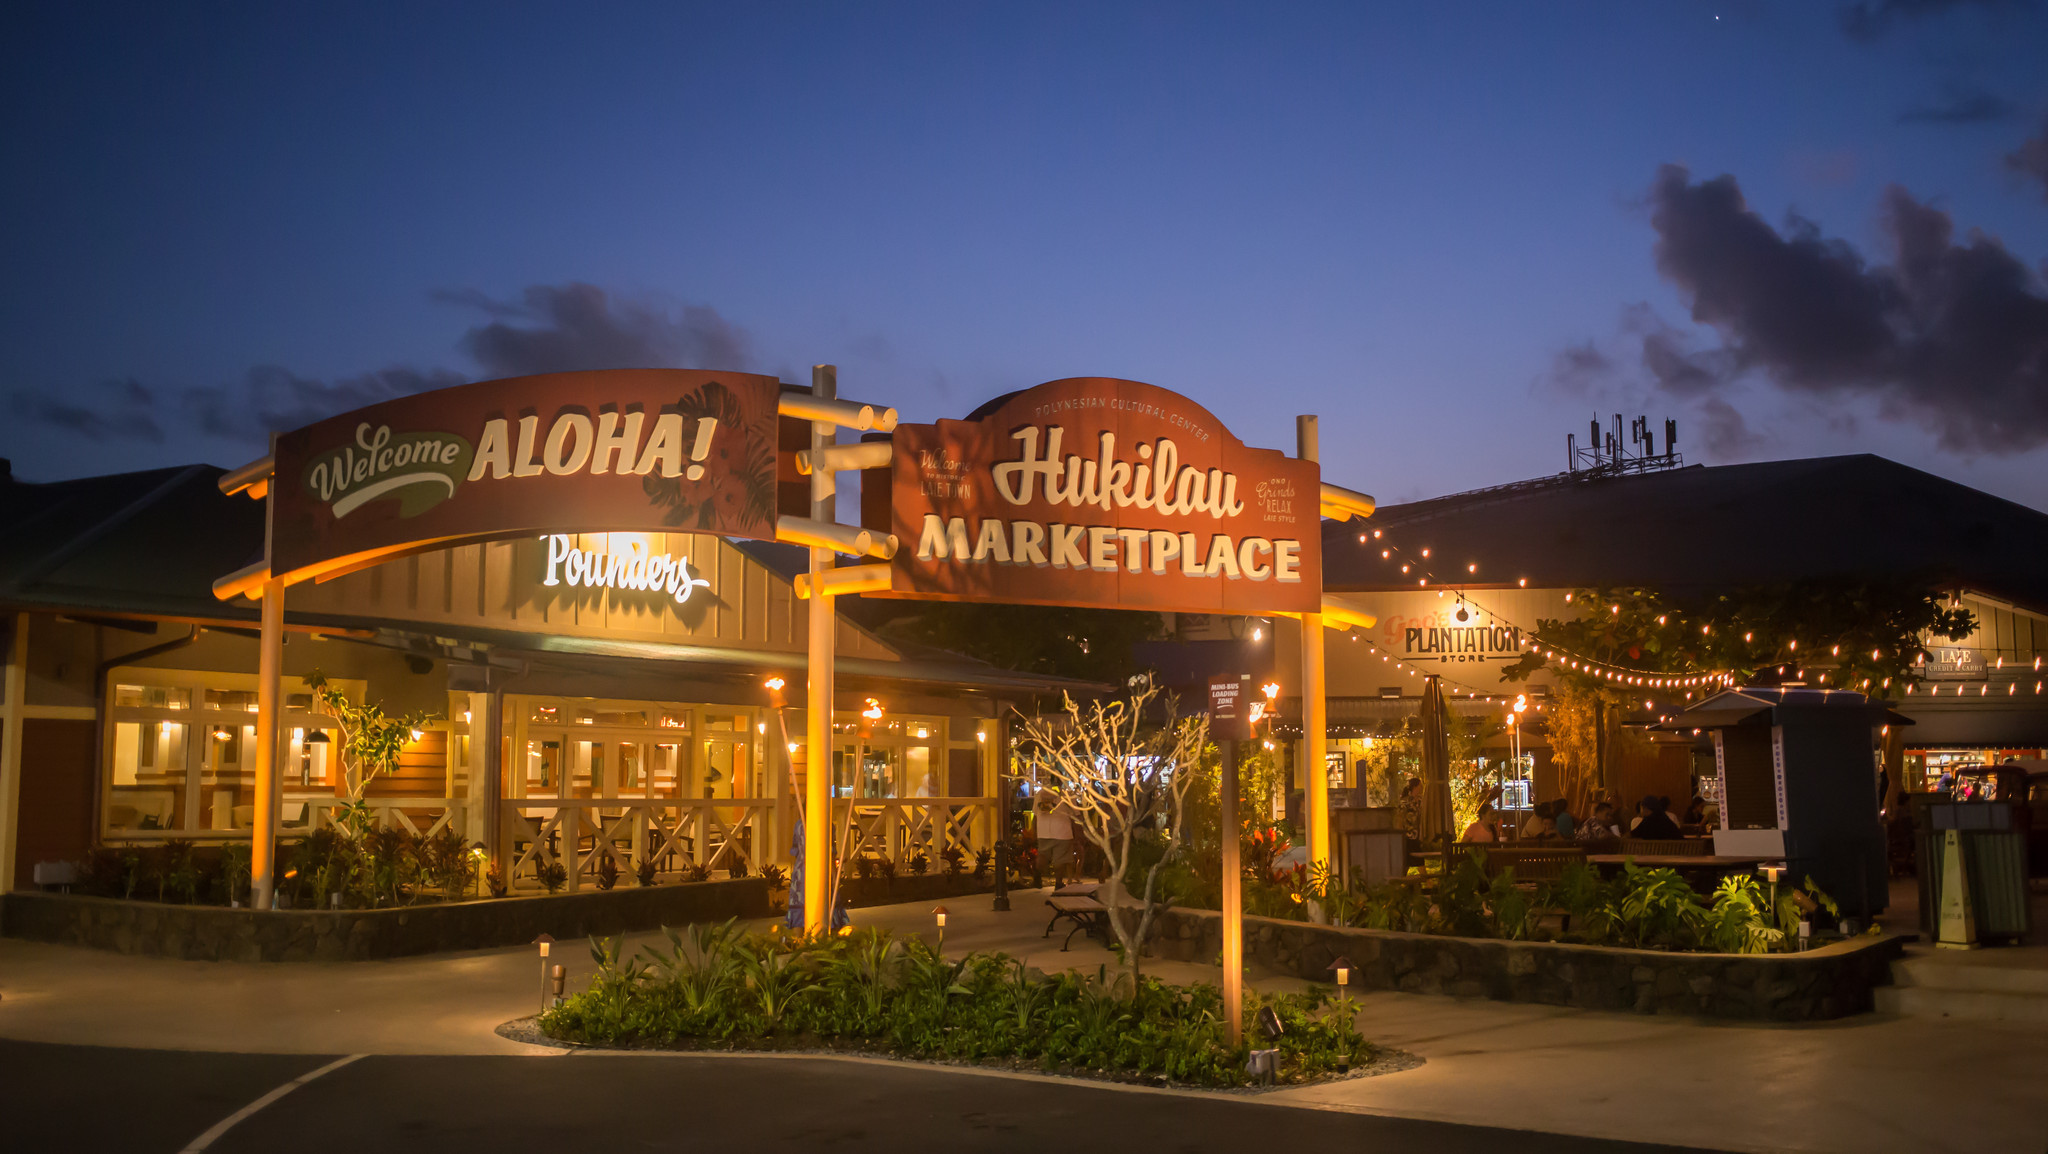 On oahu 39 s north shore a new marketplace summons the past for Fishing stores oahu